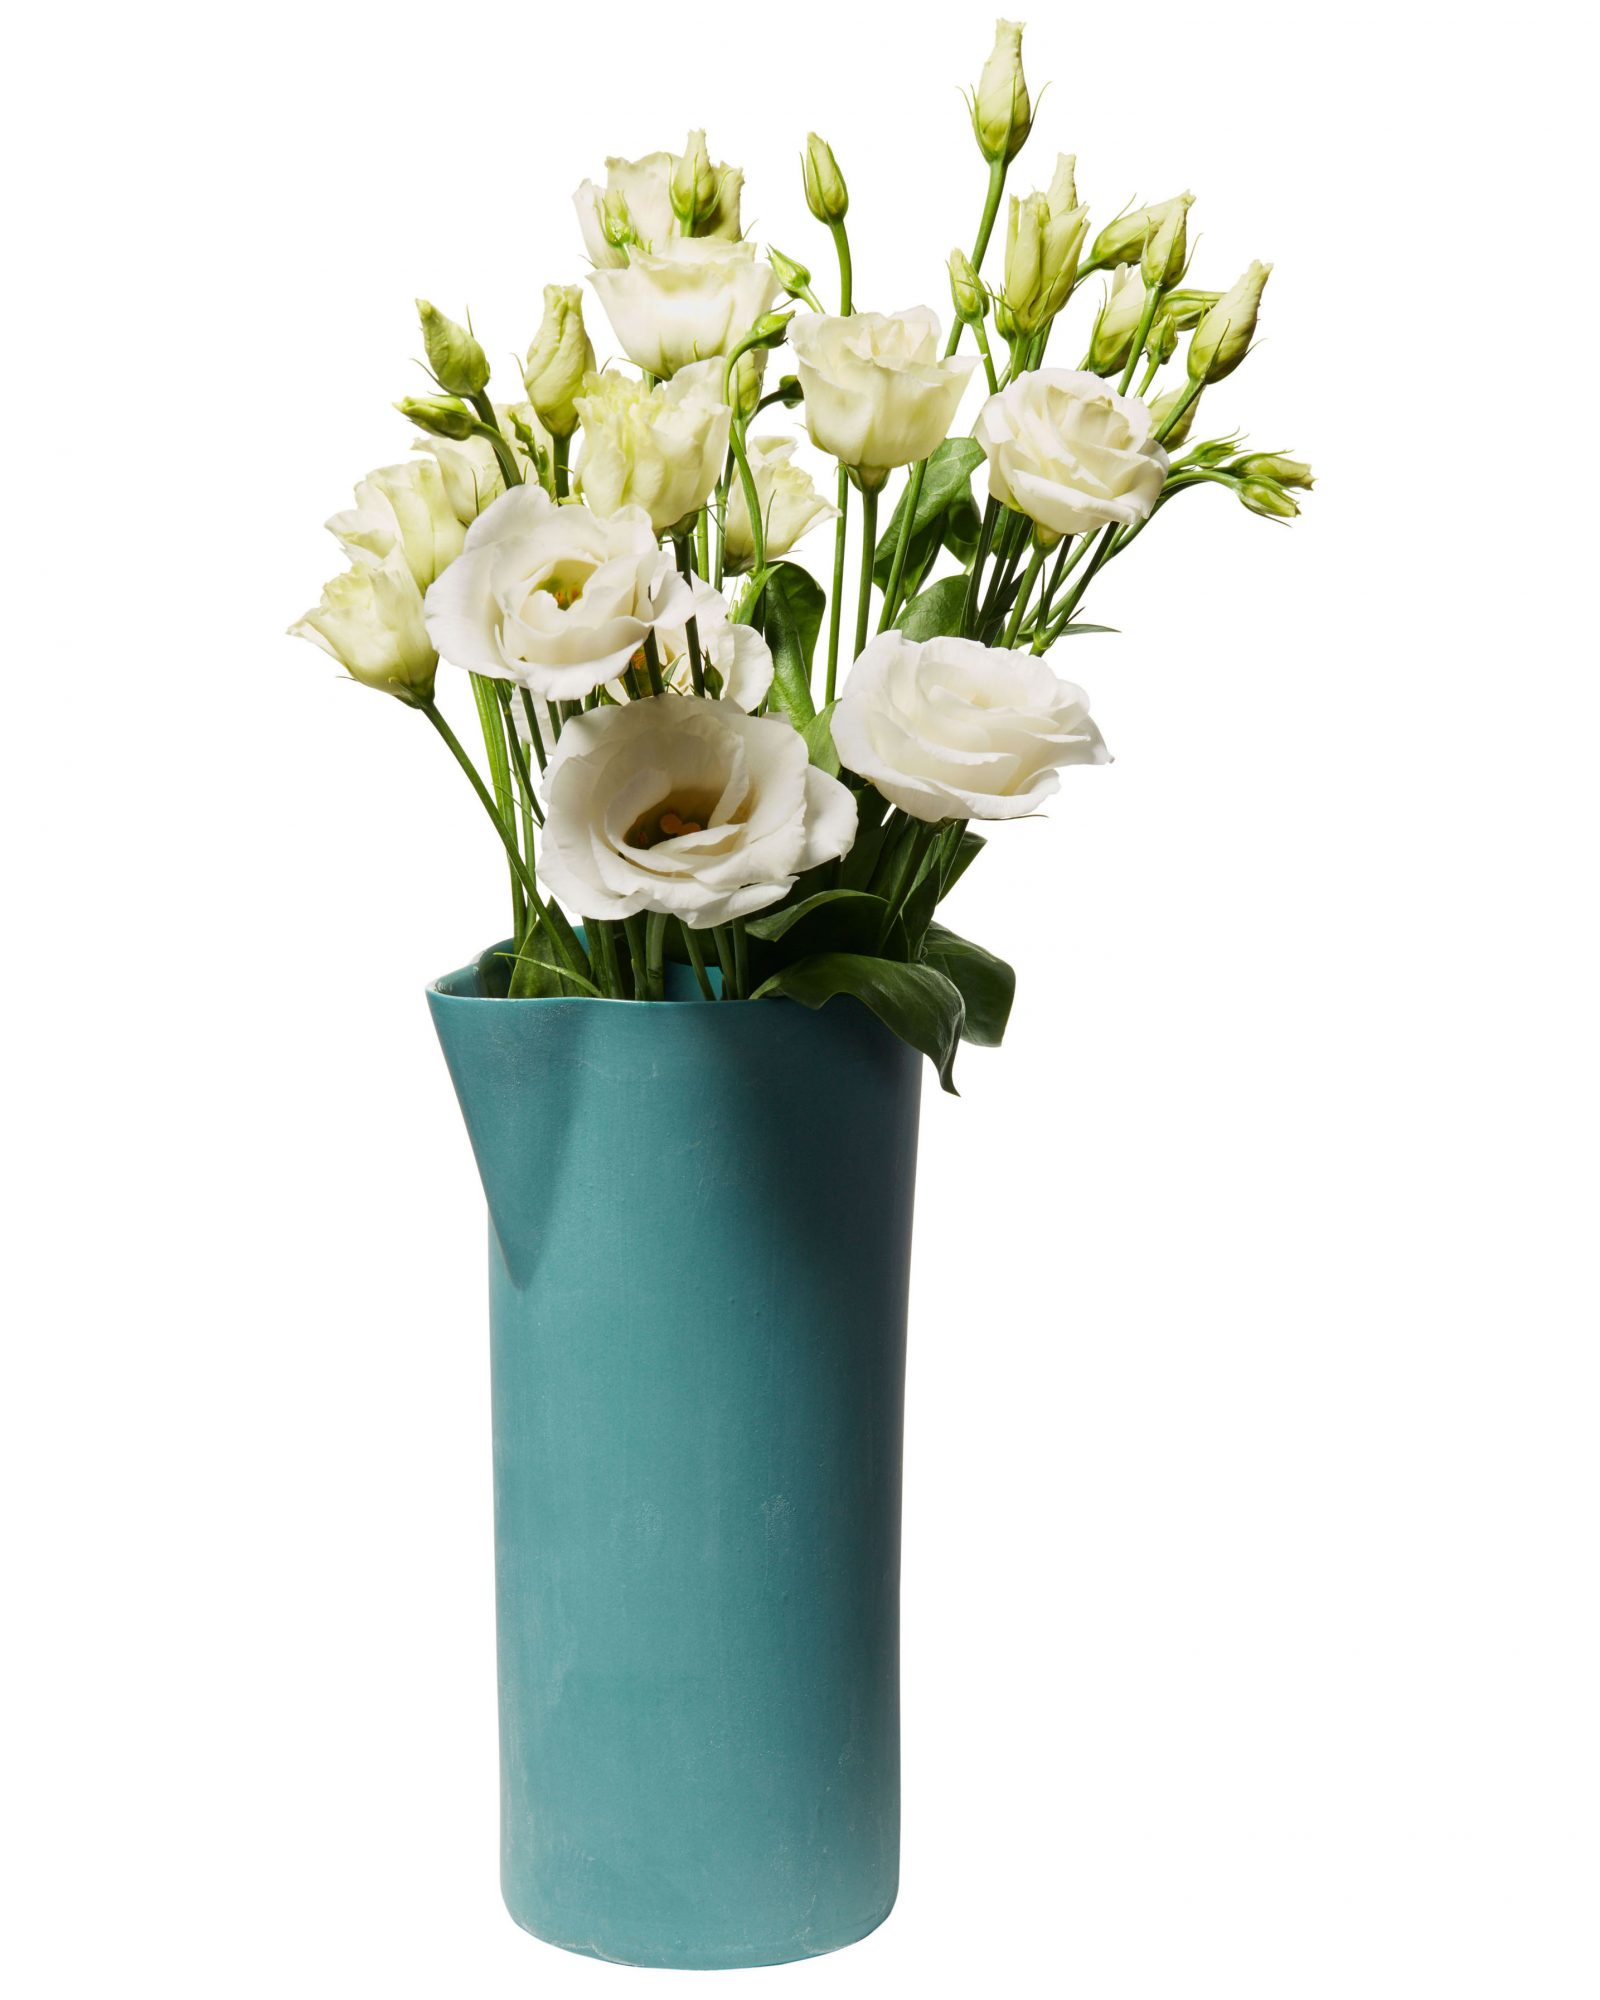 green handmade pitcher containing white roses